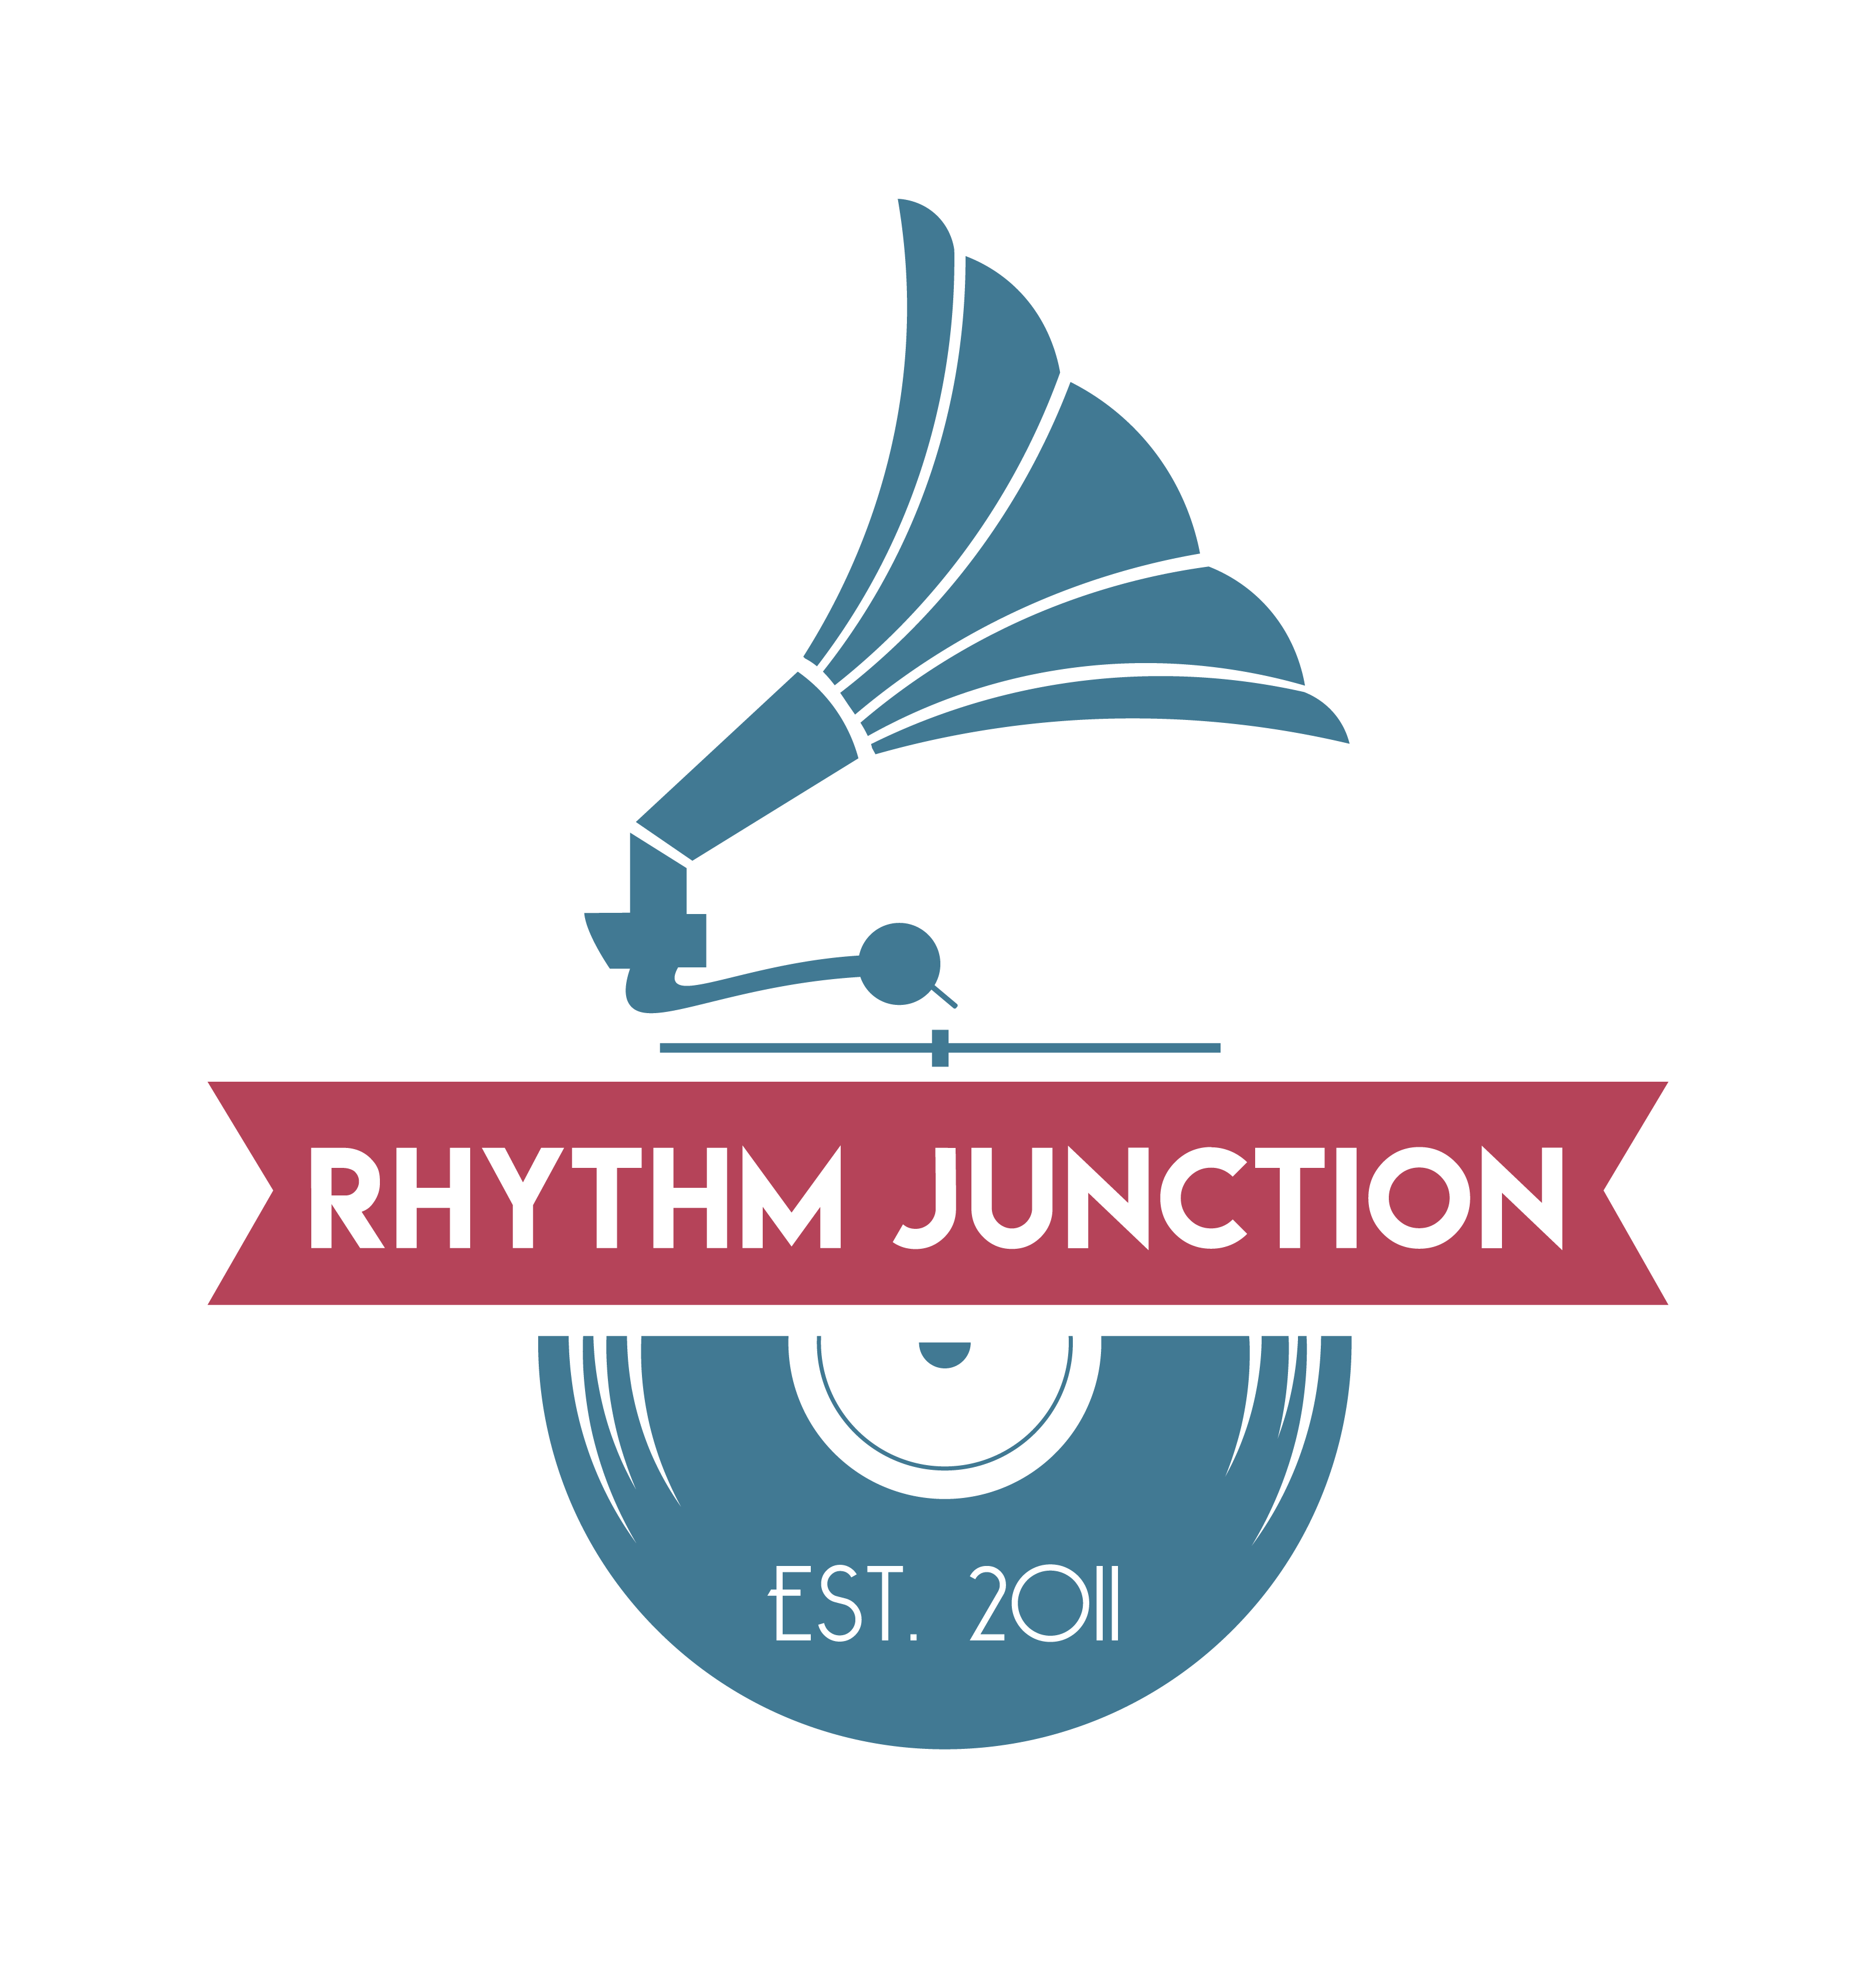 Rhythm Junction